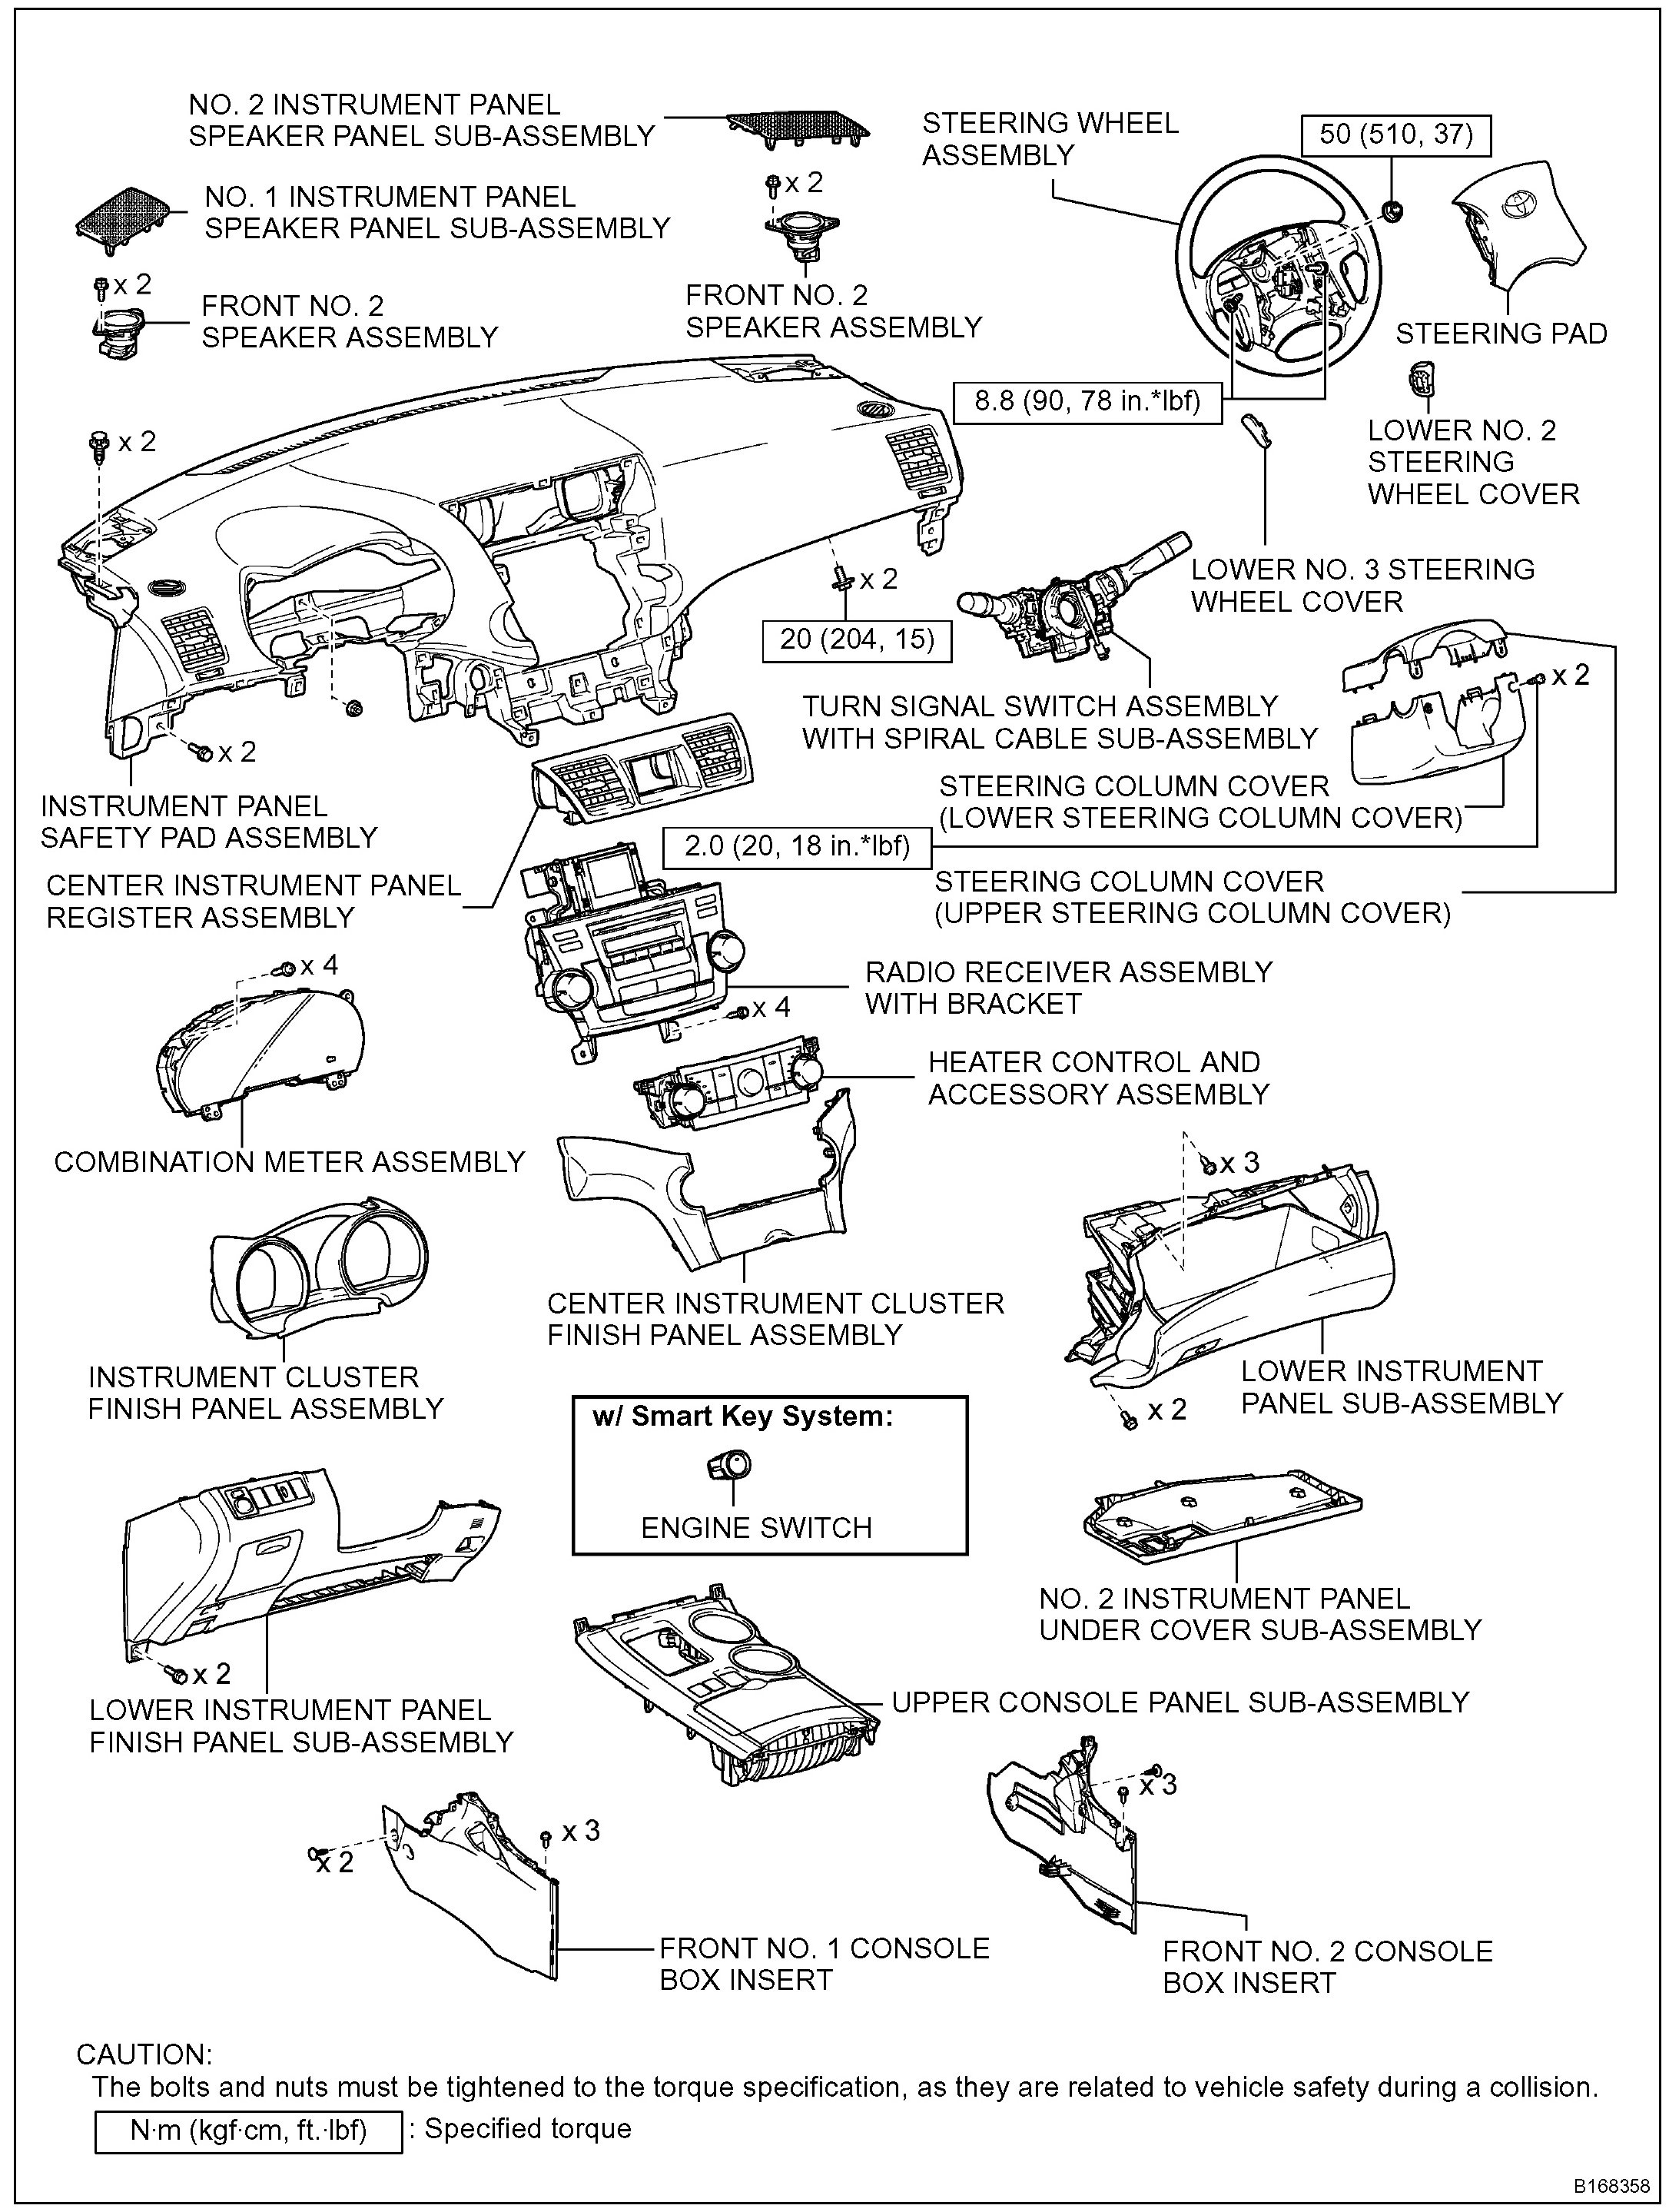 How Do You Replace The Console Lid On A 2010 Highlander Toyota Kluger Fuse Box Location Graphic